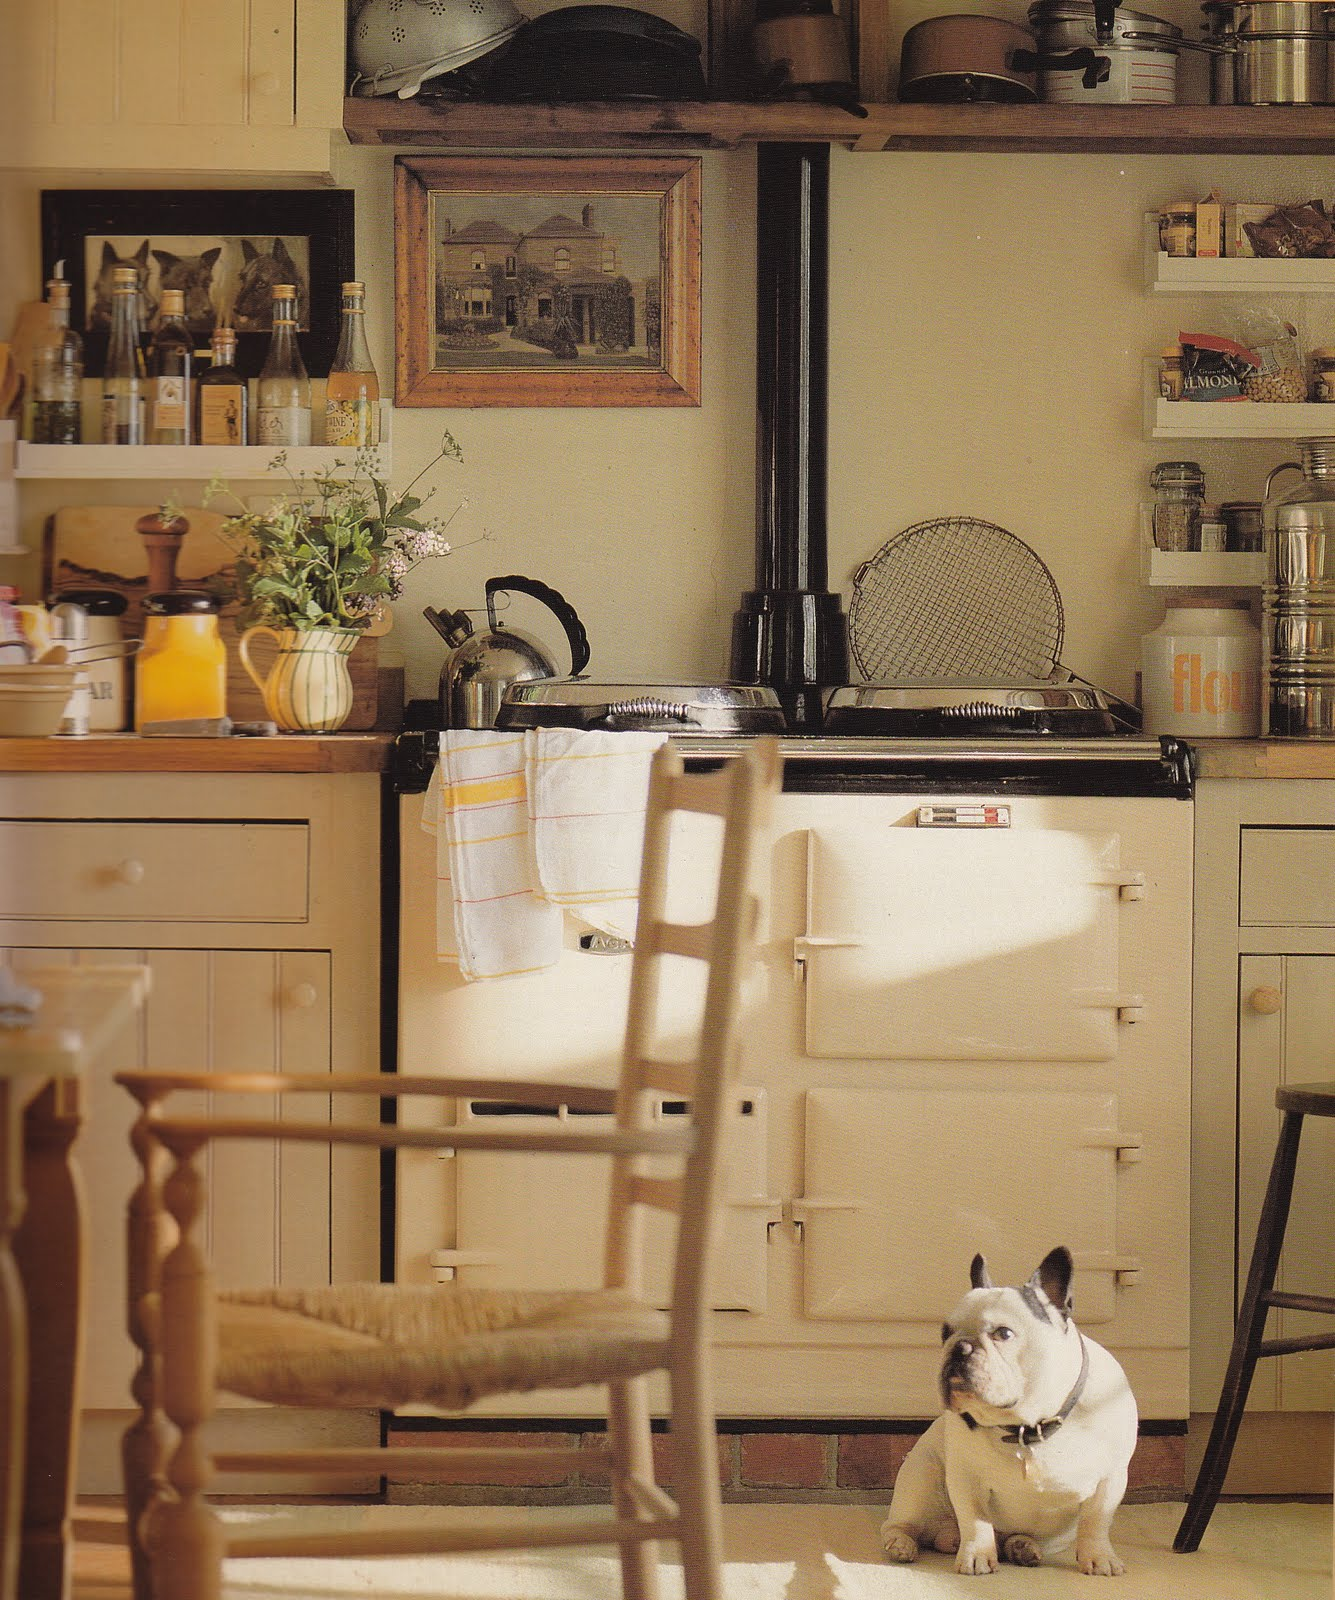 Rosemarsh Knits: English Cottages And A French Bulldog